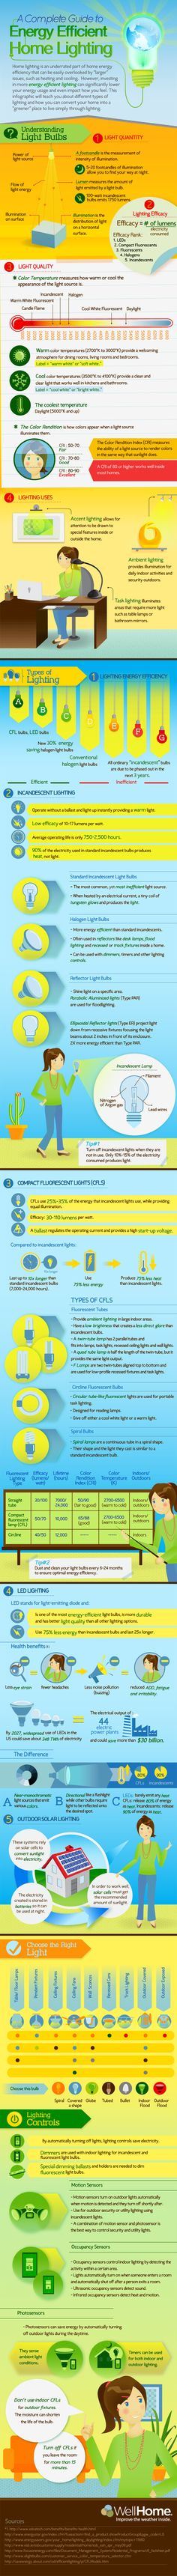 Incredible Overview - A Complete Guide to Energy Efficient Lighting for Homes. Pin this infographic to keep this information handy!